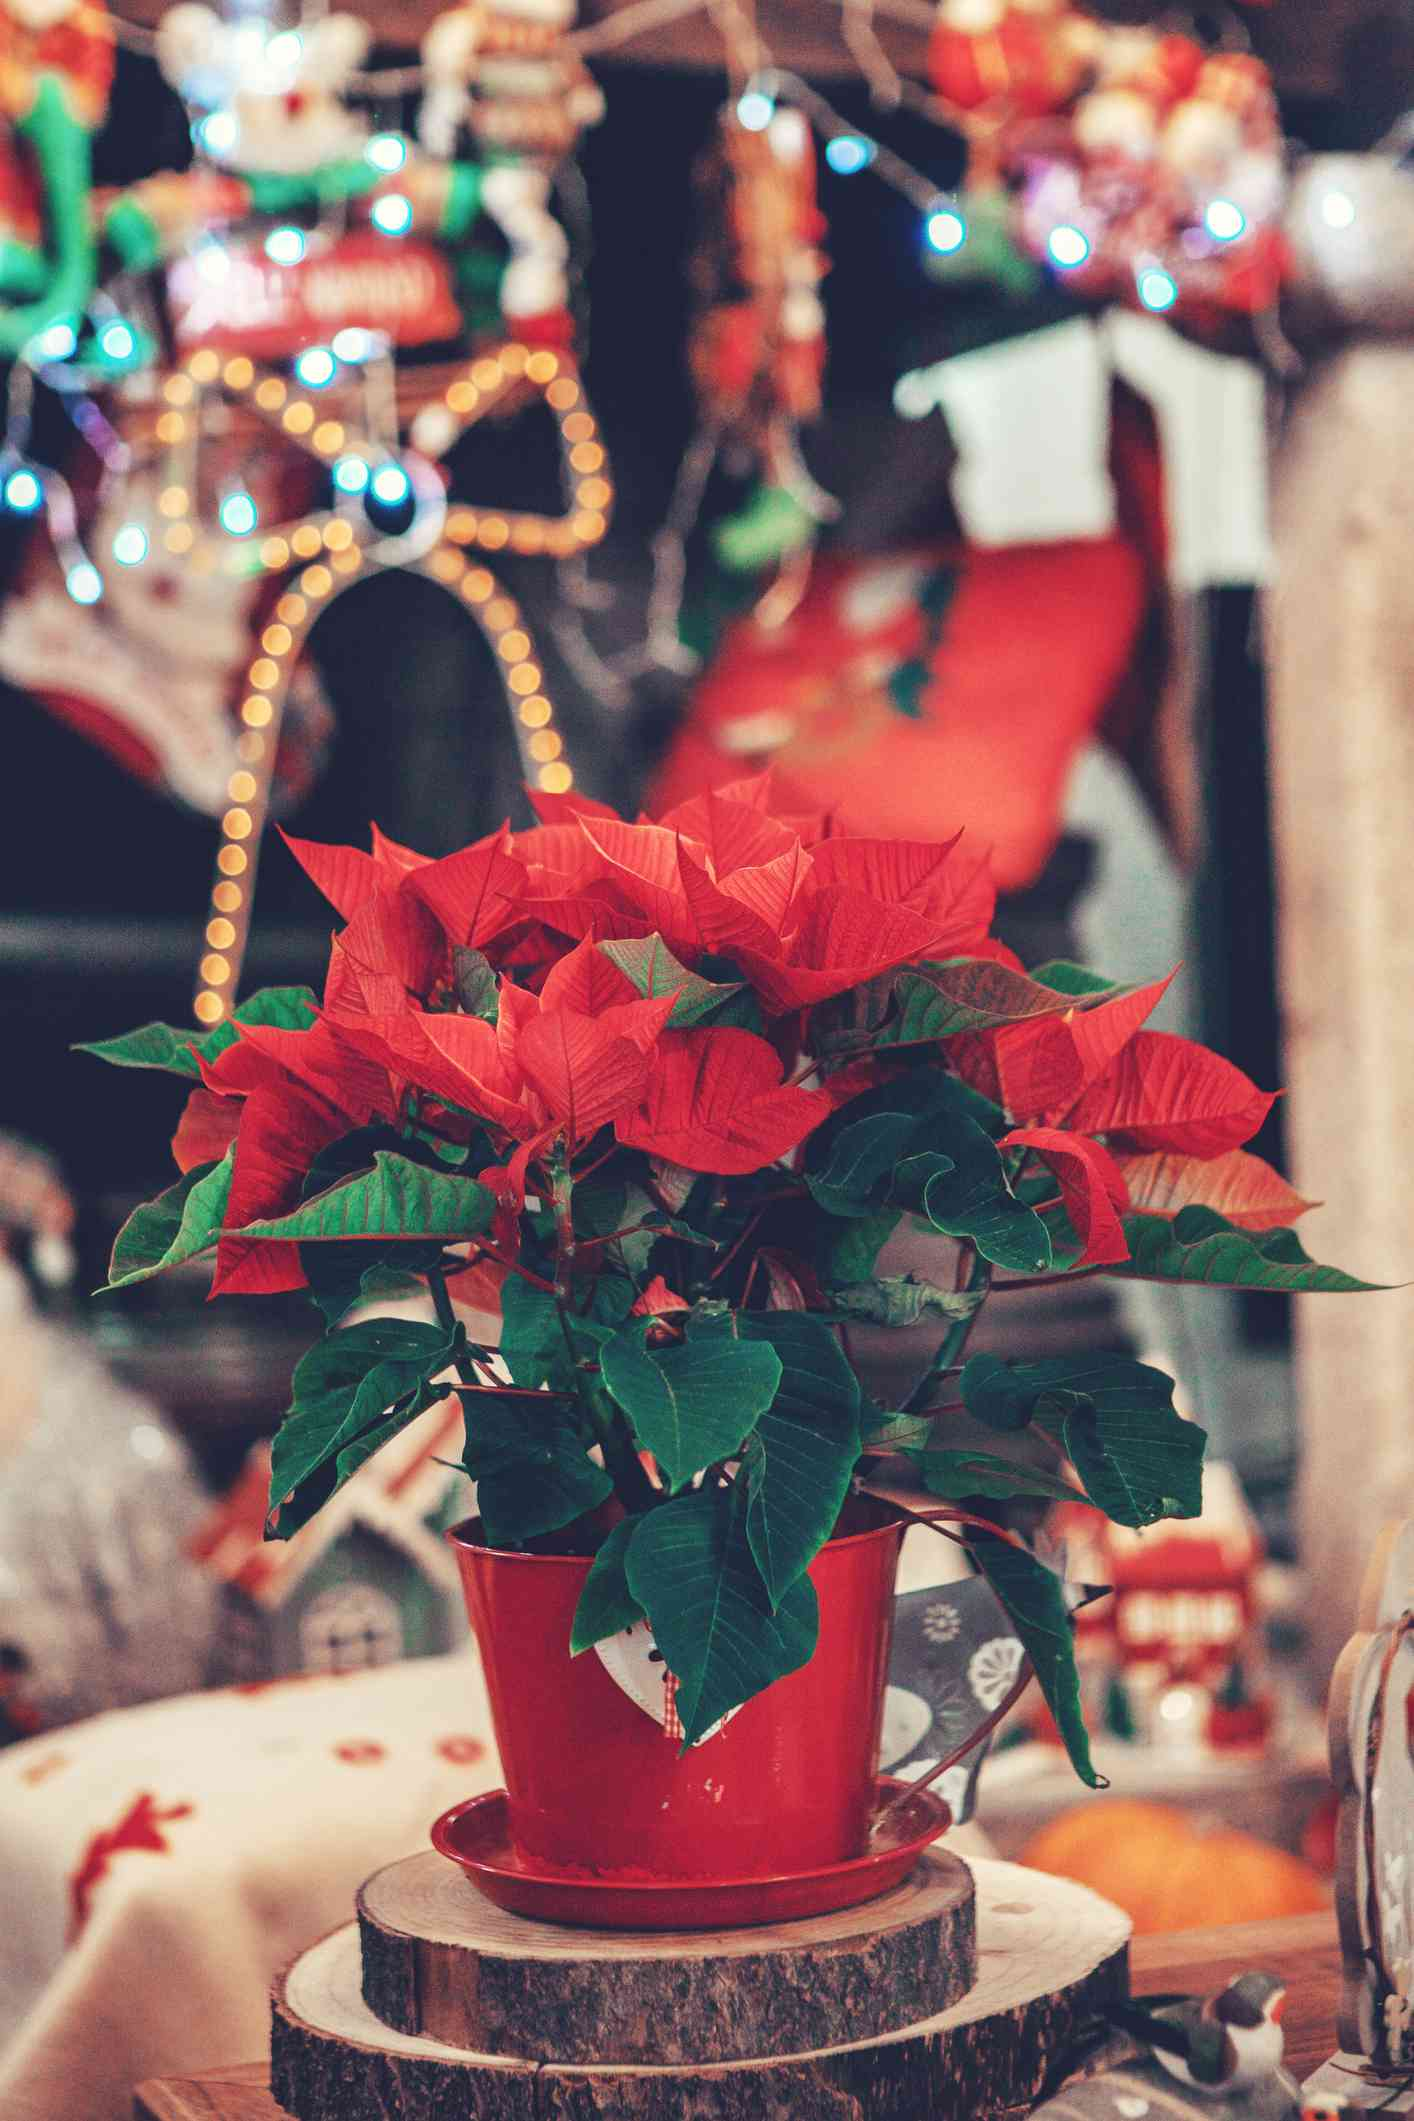 Red and green poinsettia plant in red pot